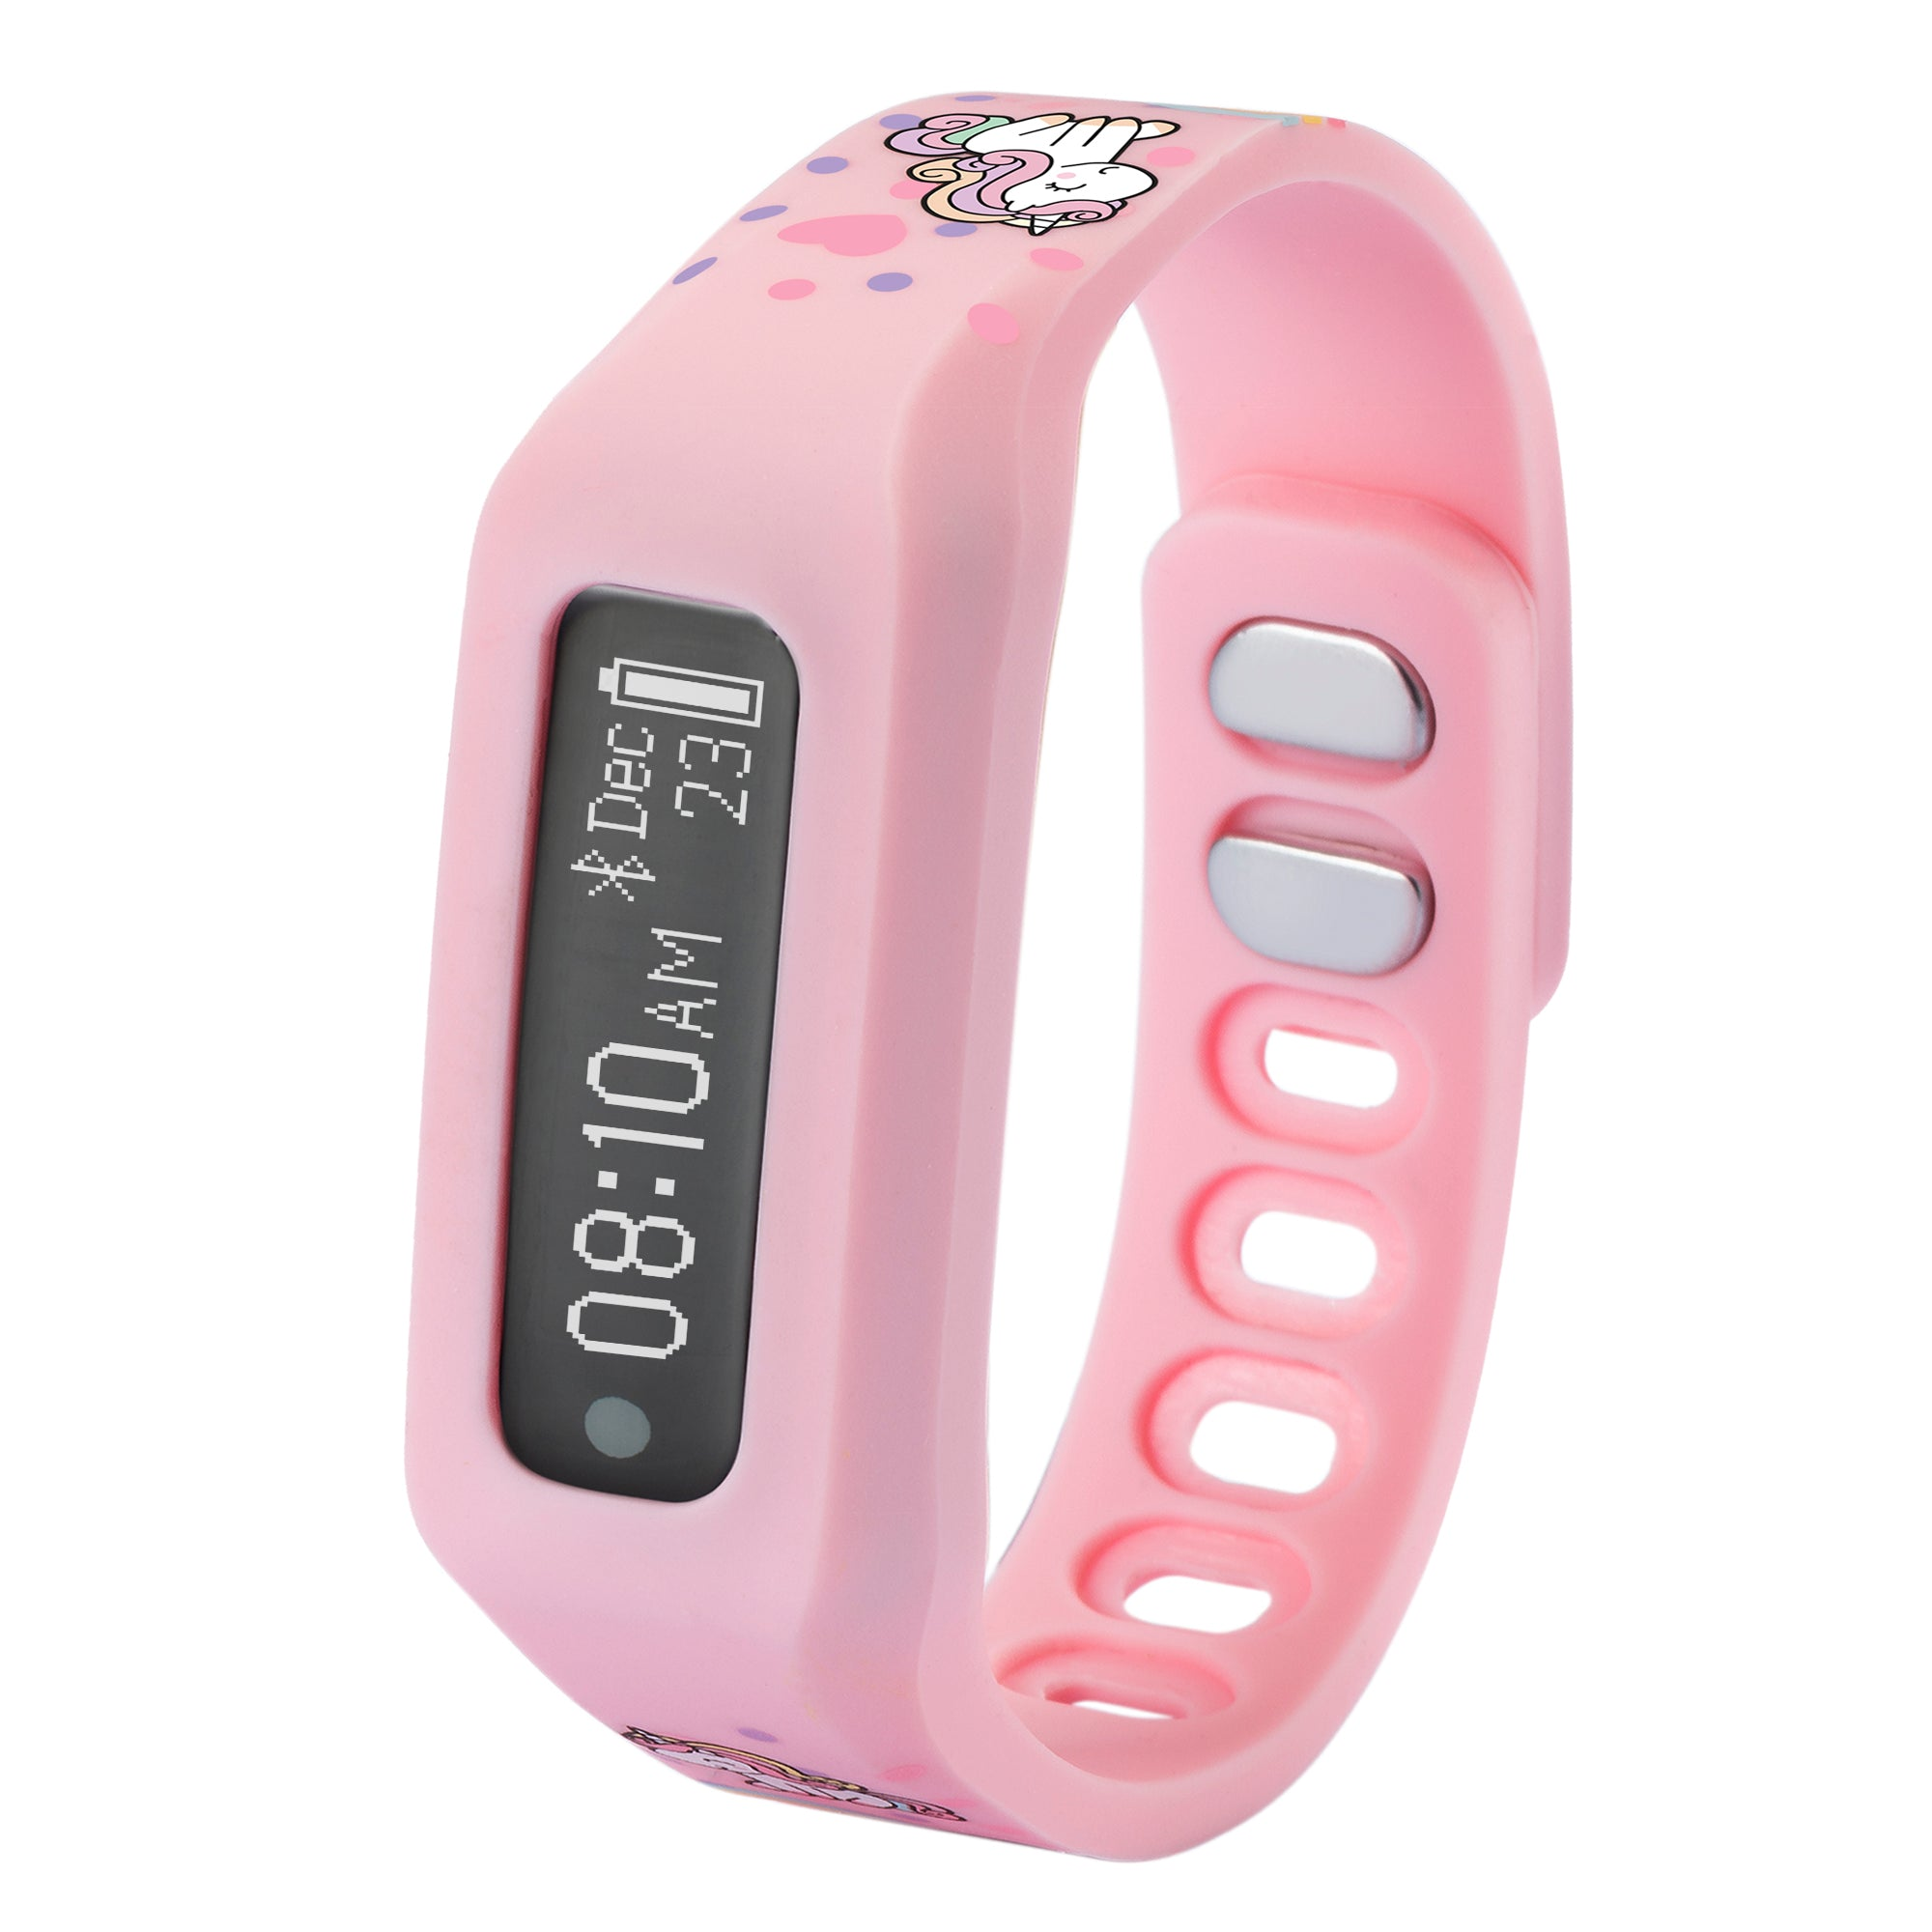 NUBAND JR CHAMPS_PINK UNICORN ACTIVITY AND SLEEP TRACKER